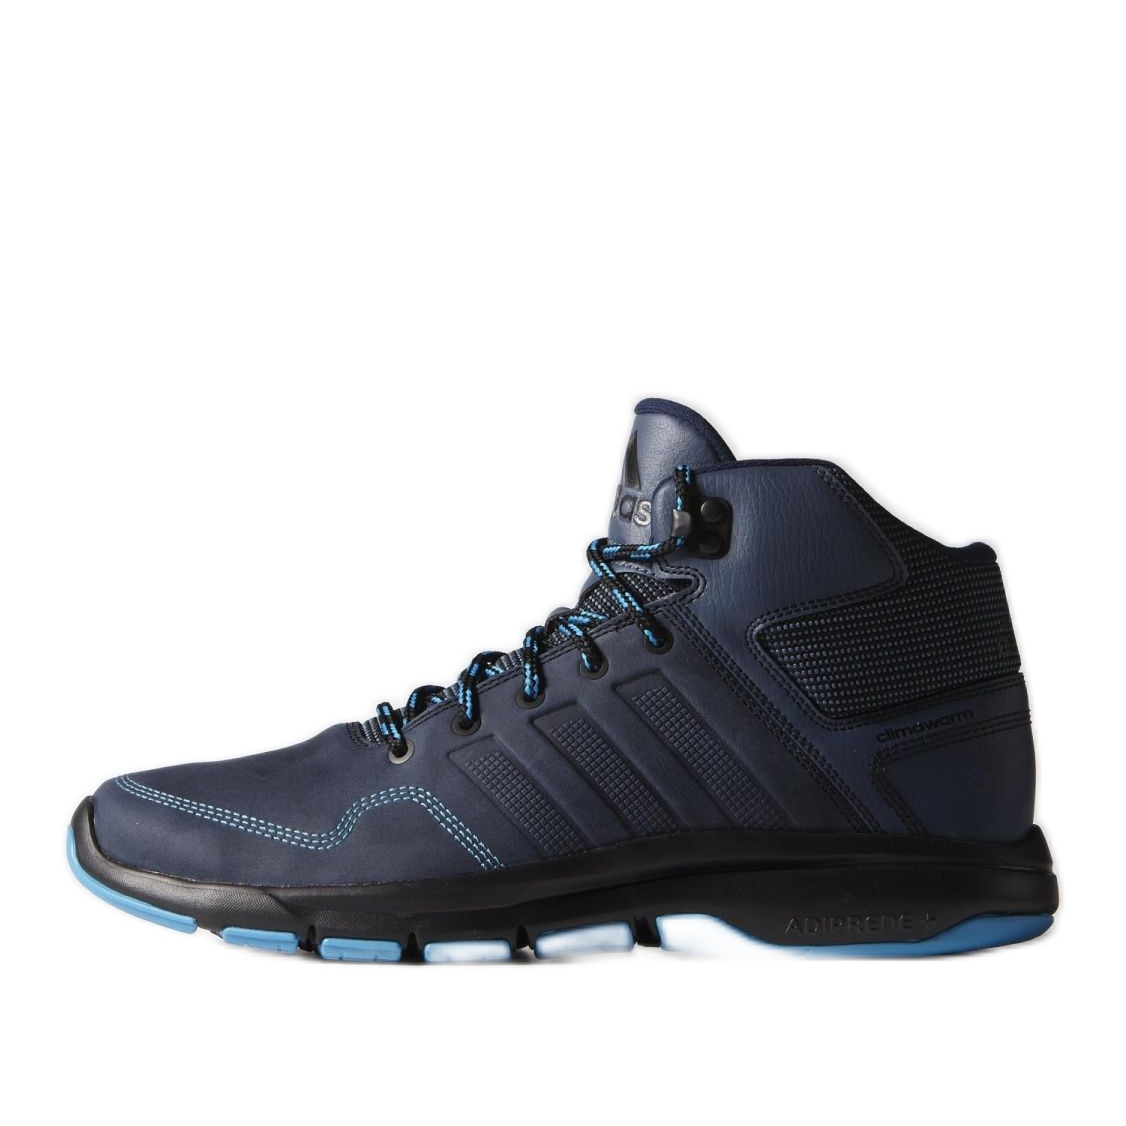 Details about Adidas Climawarm Supreme M22866 shoes navy